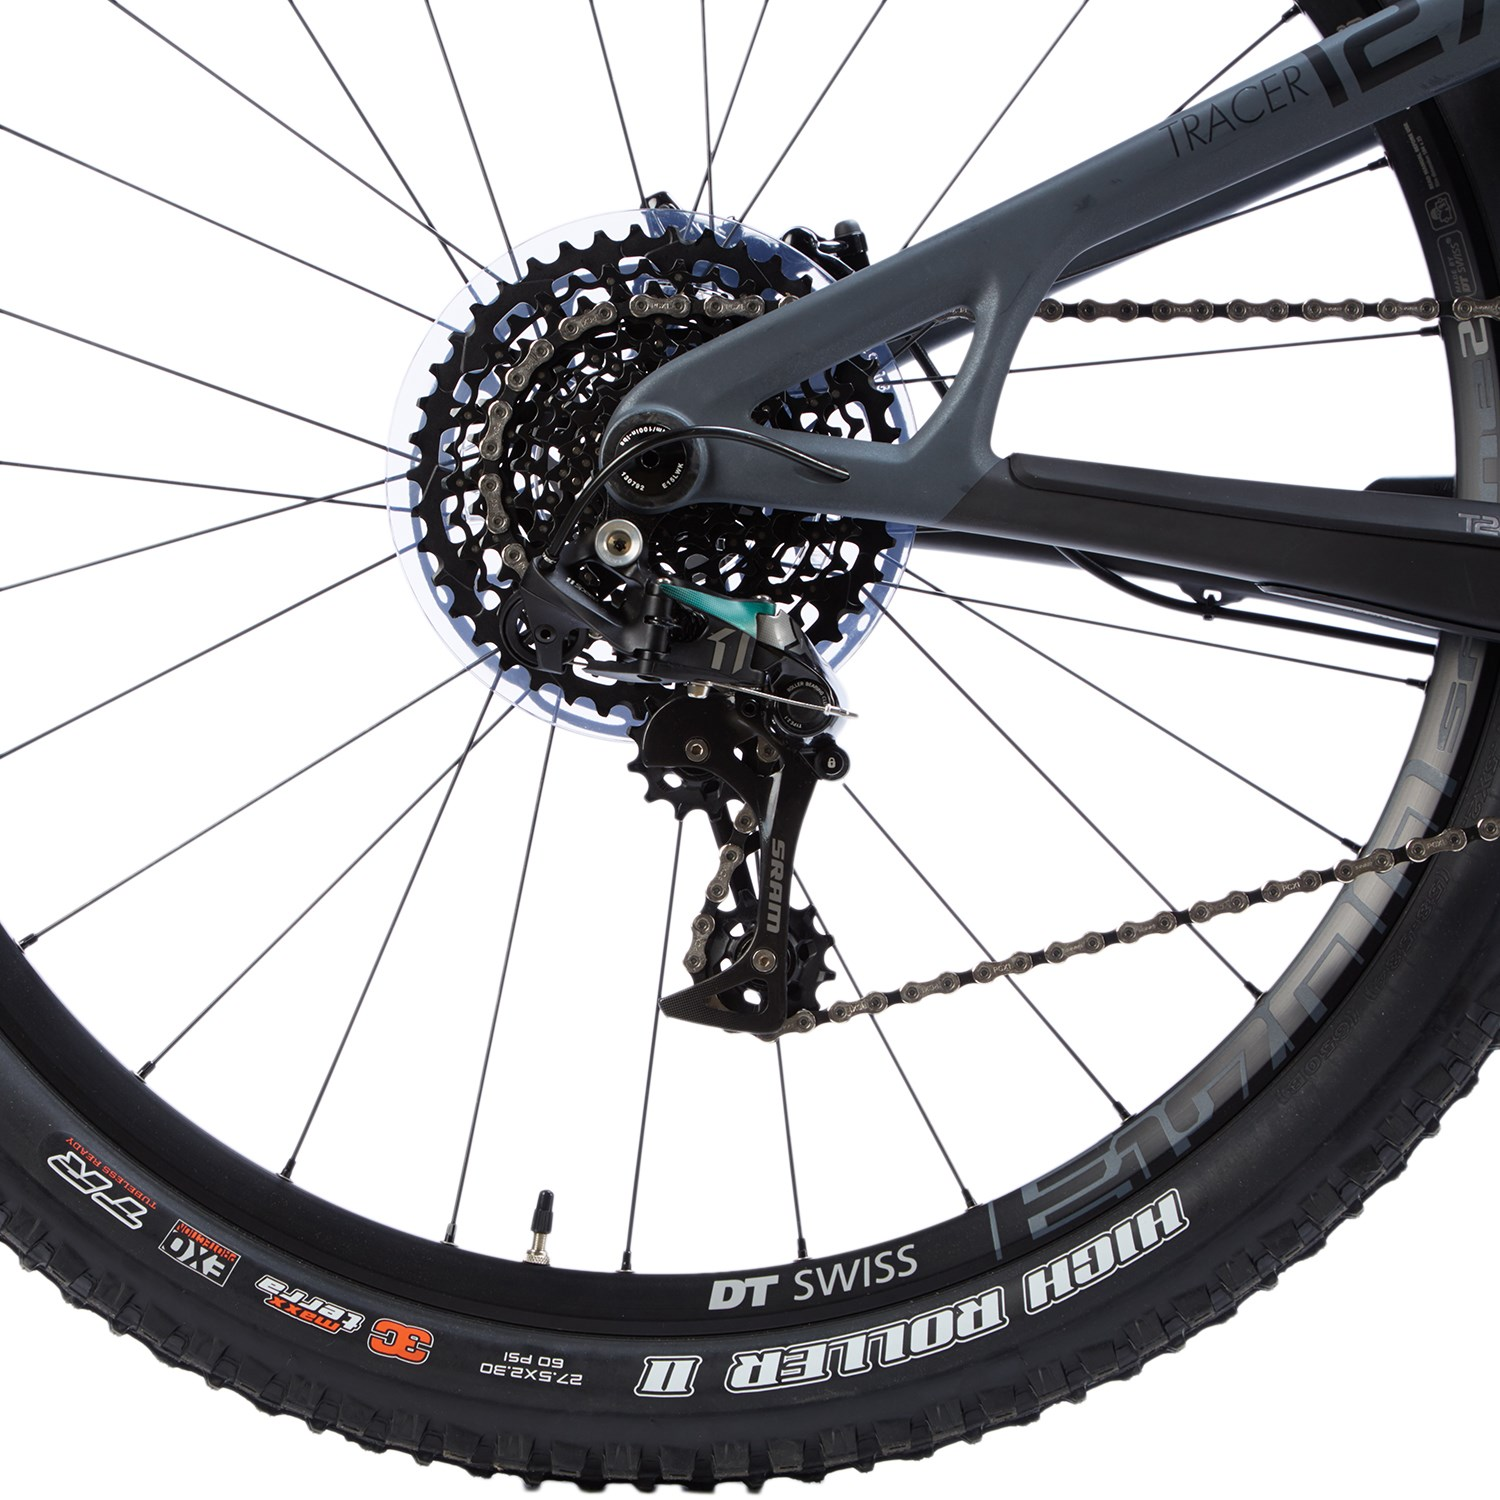 f8dfb2910 Intense Cycles Tracer 275C Pro Complete Mountain Bike 2016 | evo